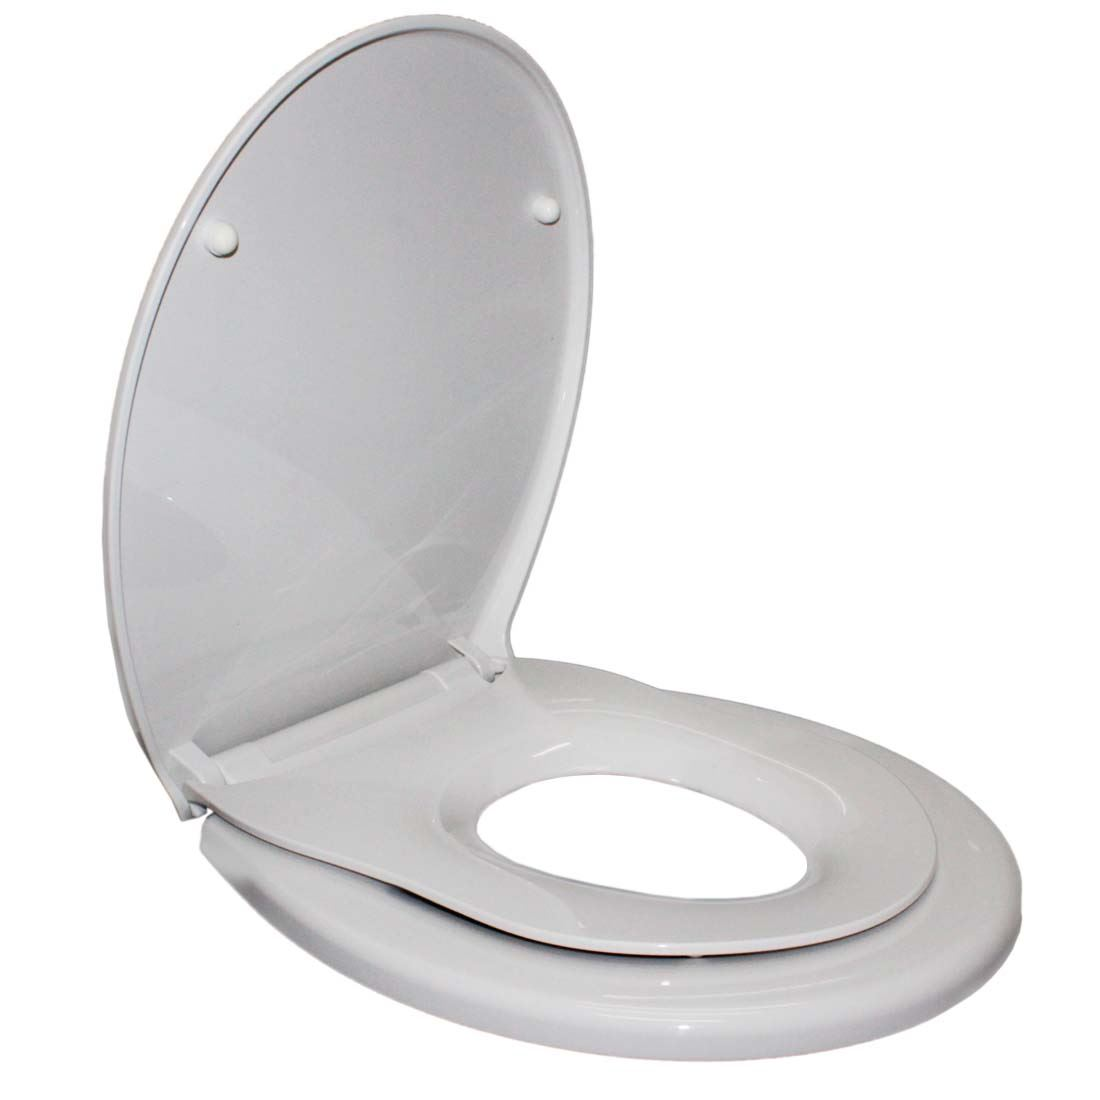 Child Adults Family Soft Close Top Fix Quick Release Toilet Seat Potty Training